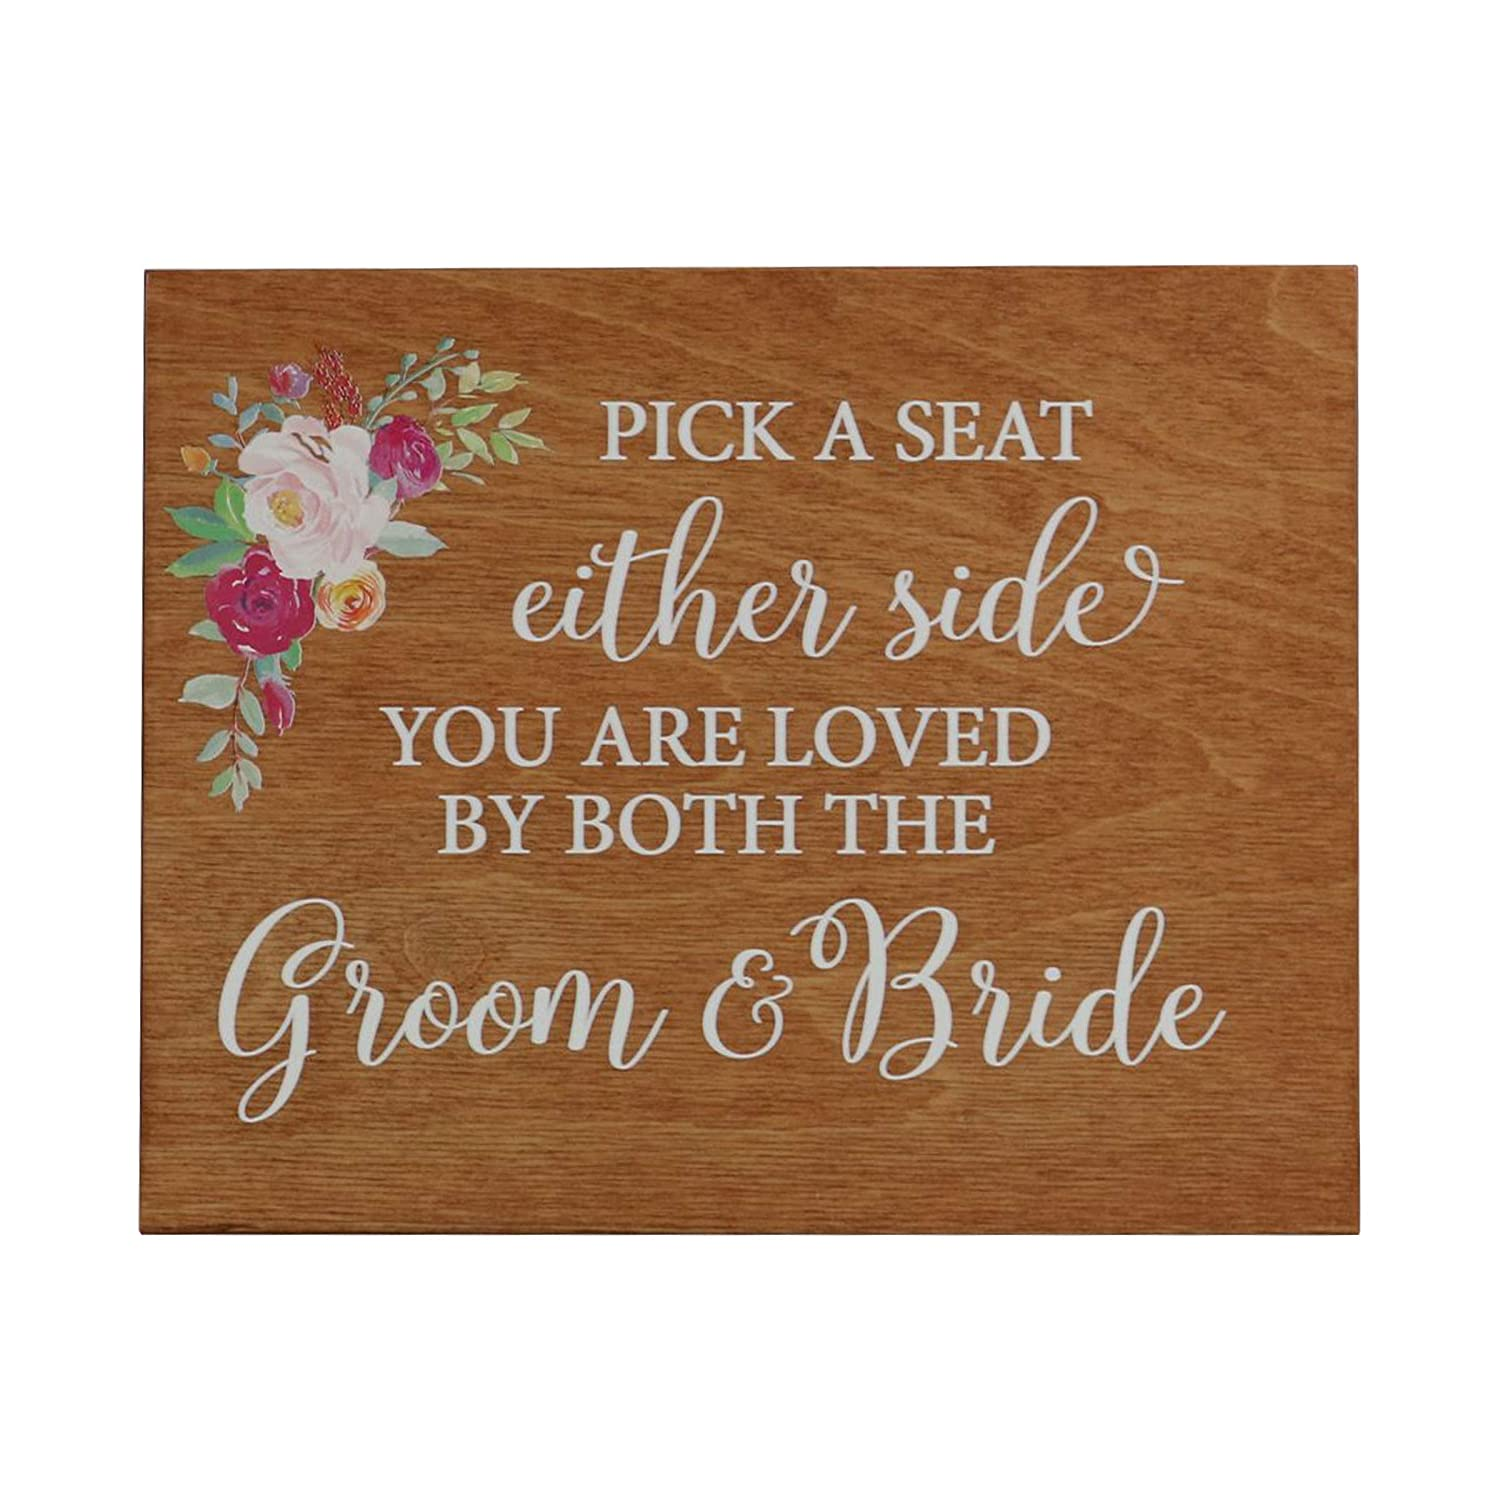 Walnut 8x10 LifeSong Milestones Pick a Seat with Flowers Decorative Wedding Party Signs for Ceremony and Reception for Bride and Groom